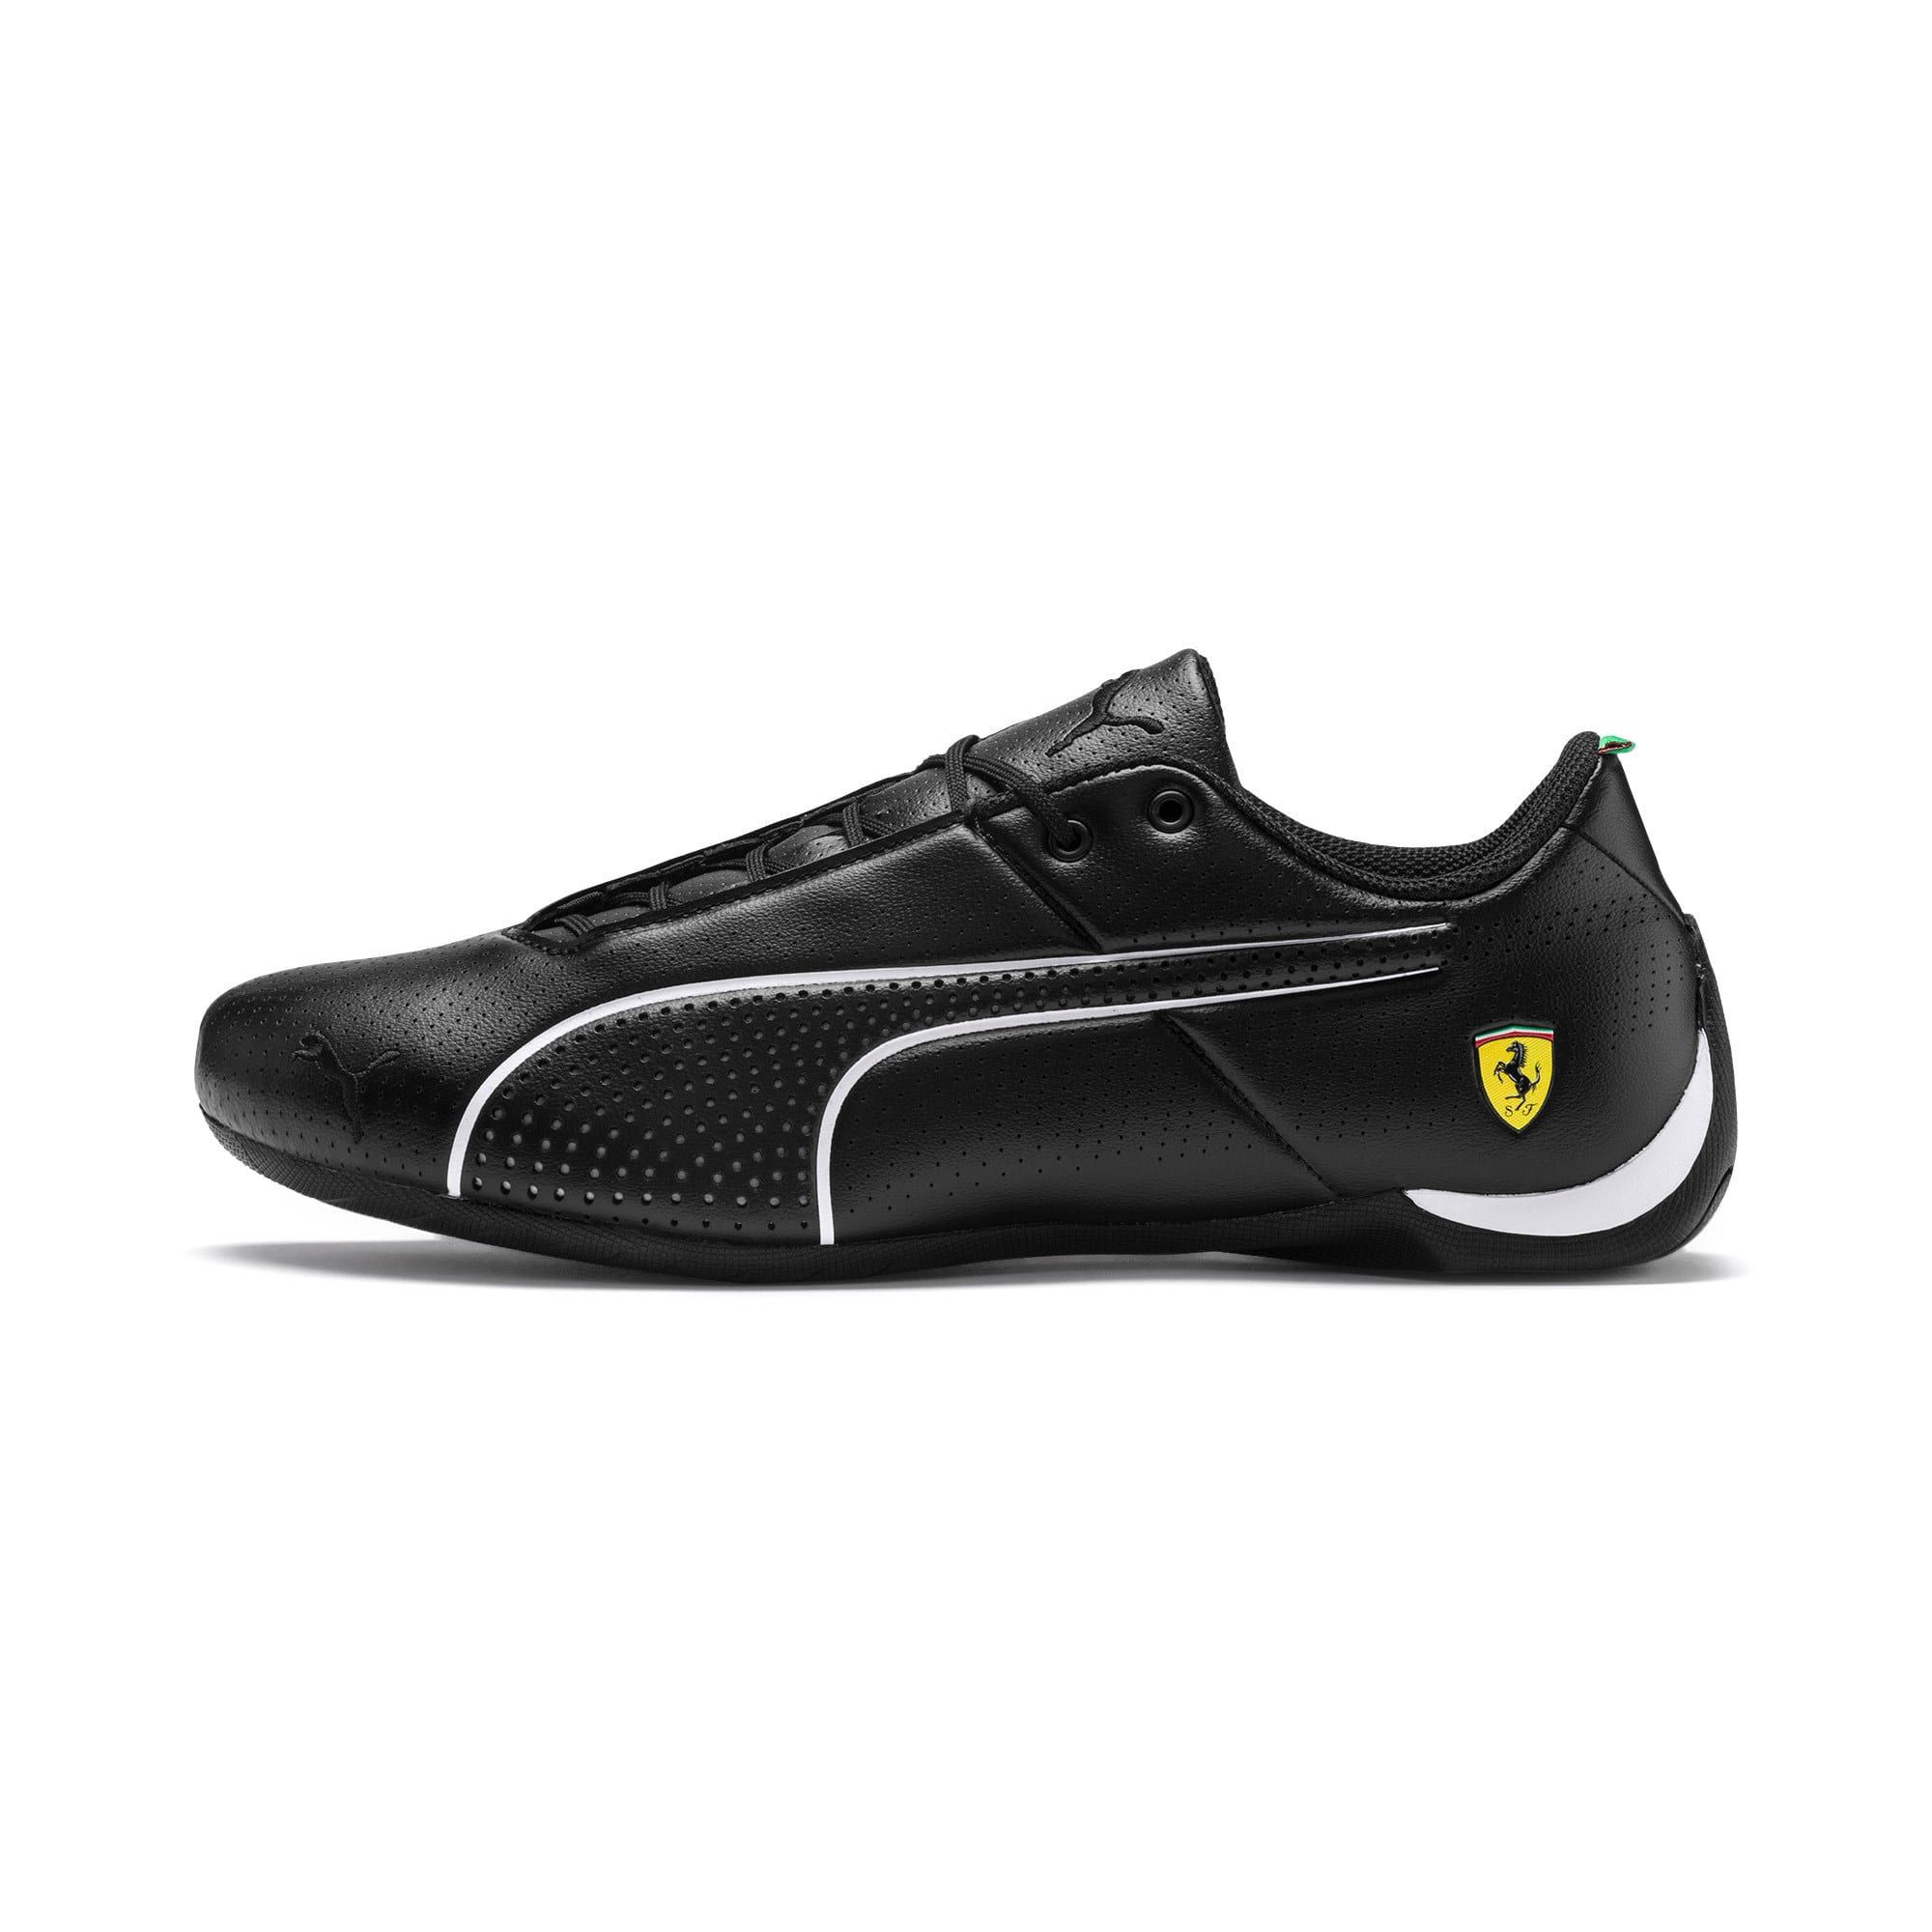 PUMA Ferrari Future Cat Ultra Trainers in Black/White size 10.5 #newferrari